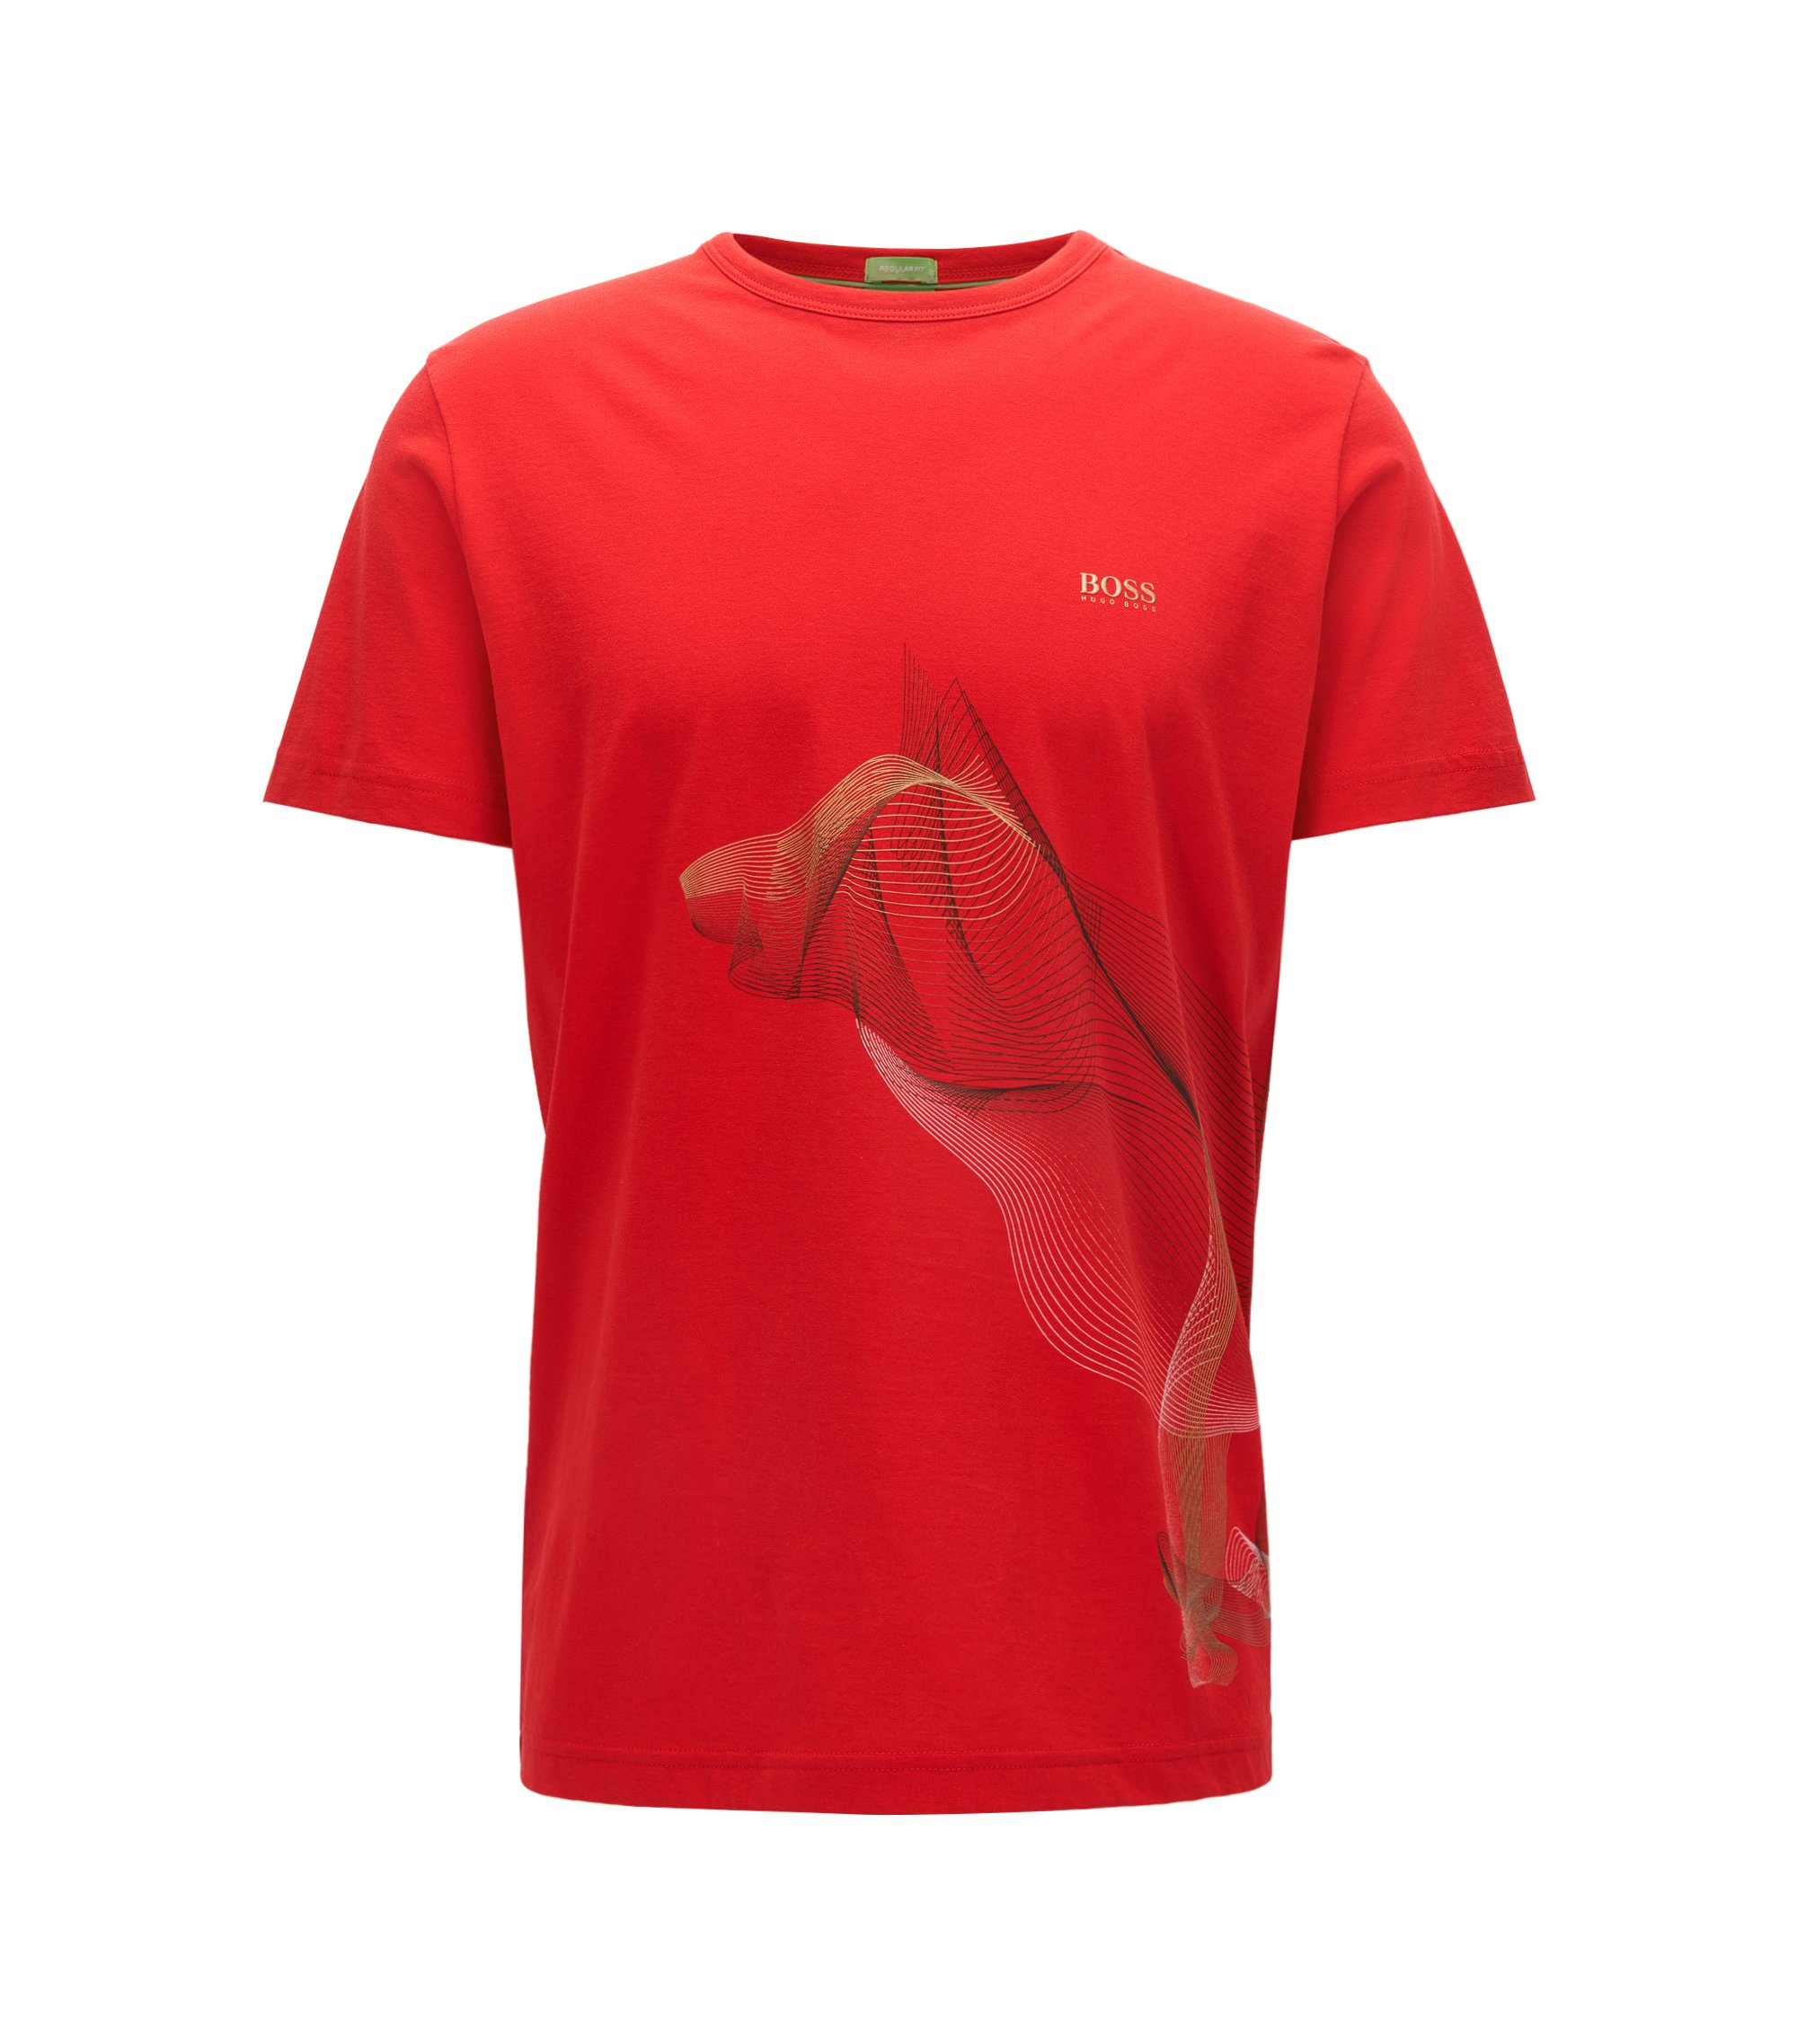 BOSS Exclusive Chinese New Year Cotton T-Shirt | Tee CNY, Red